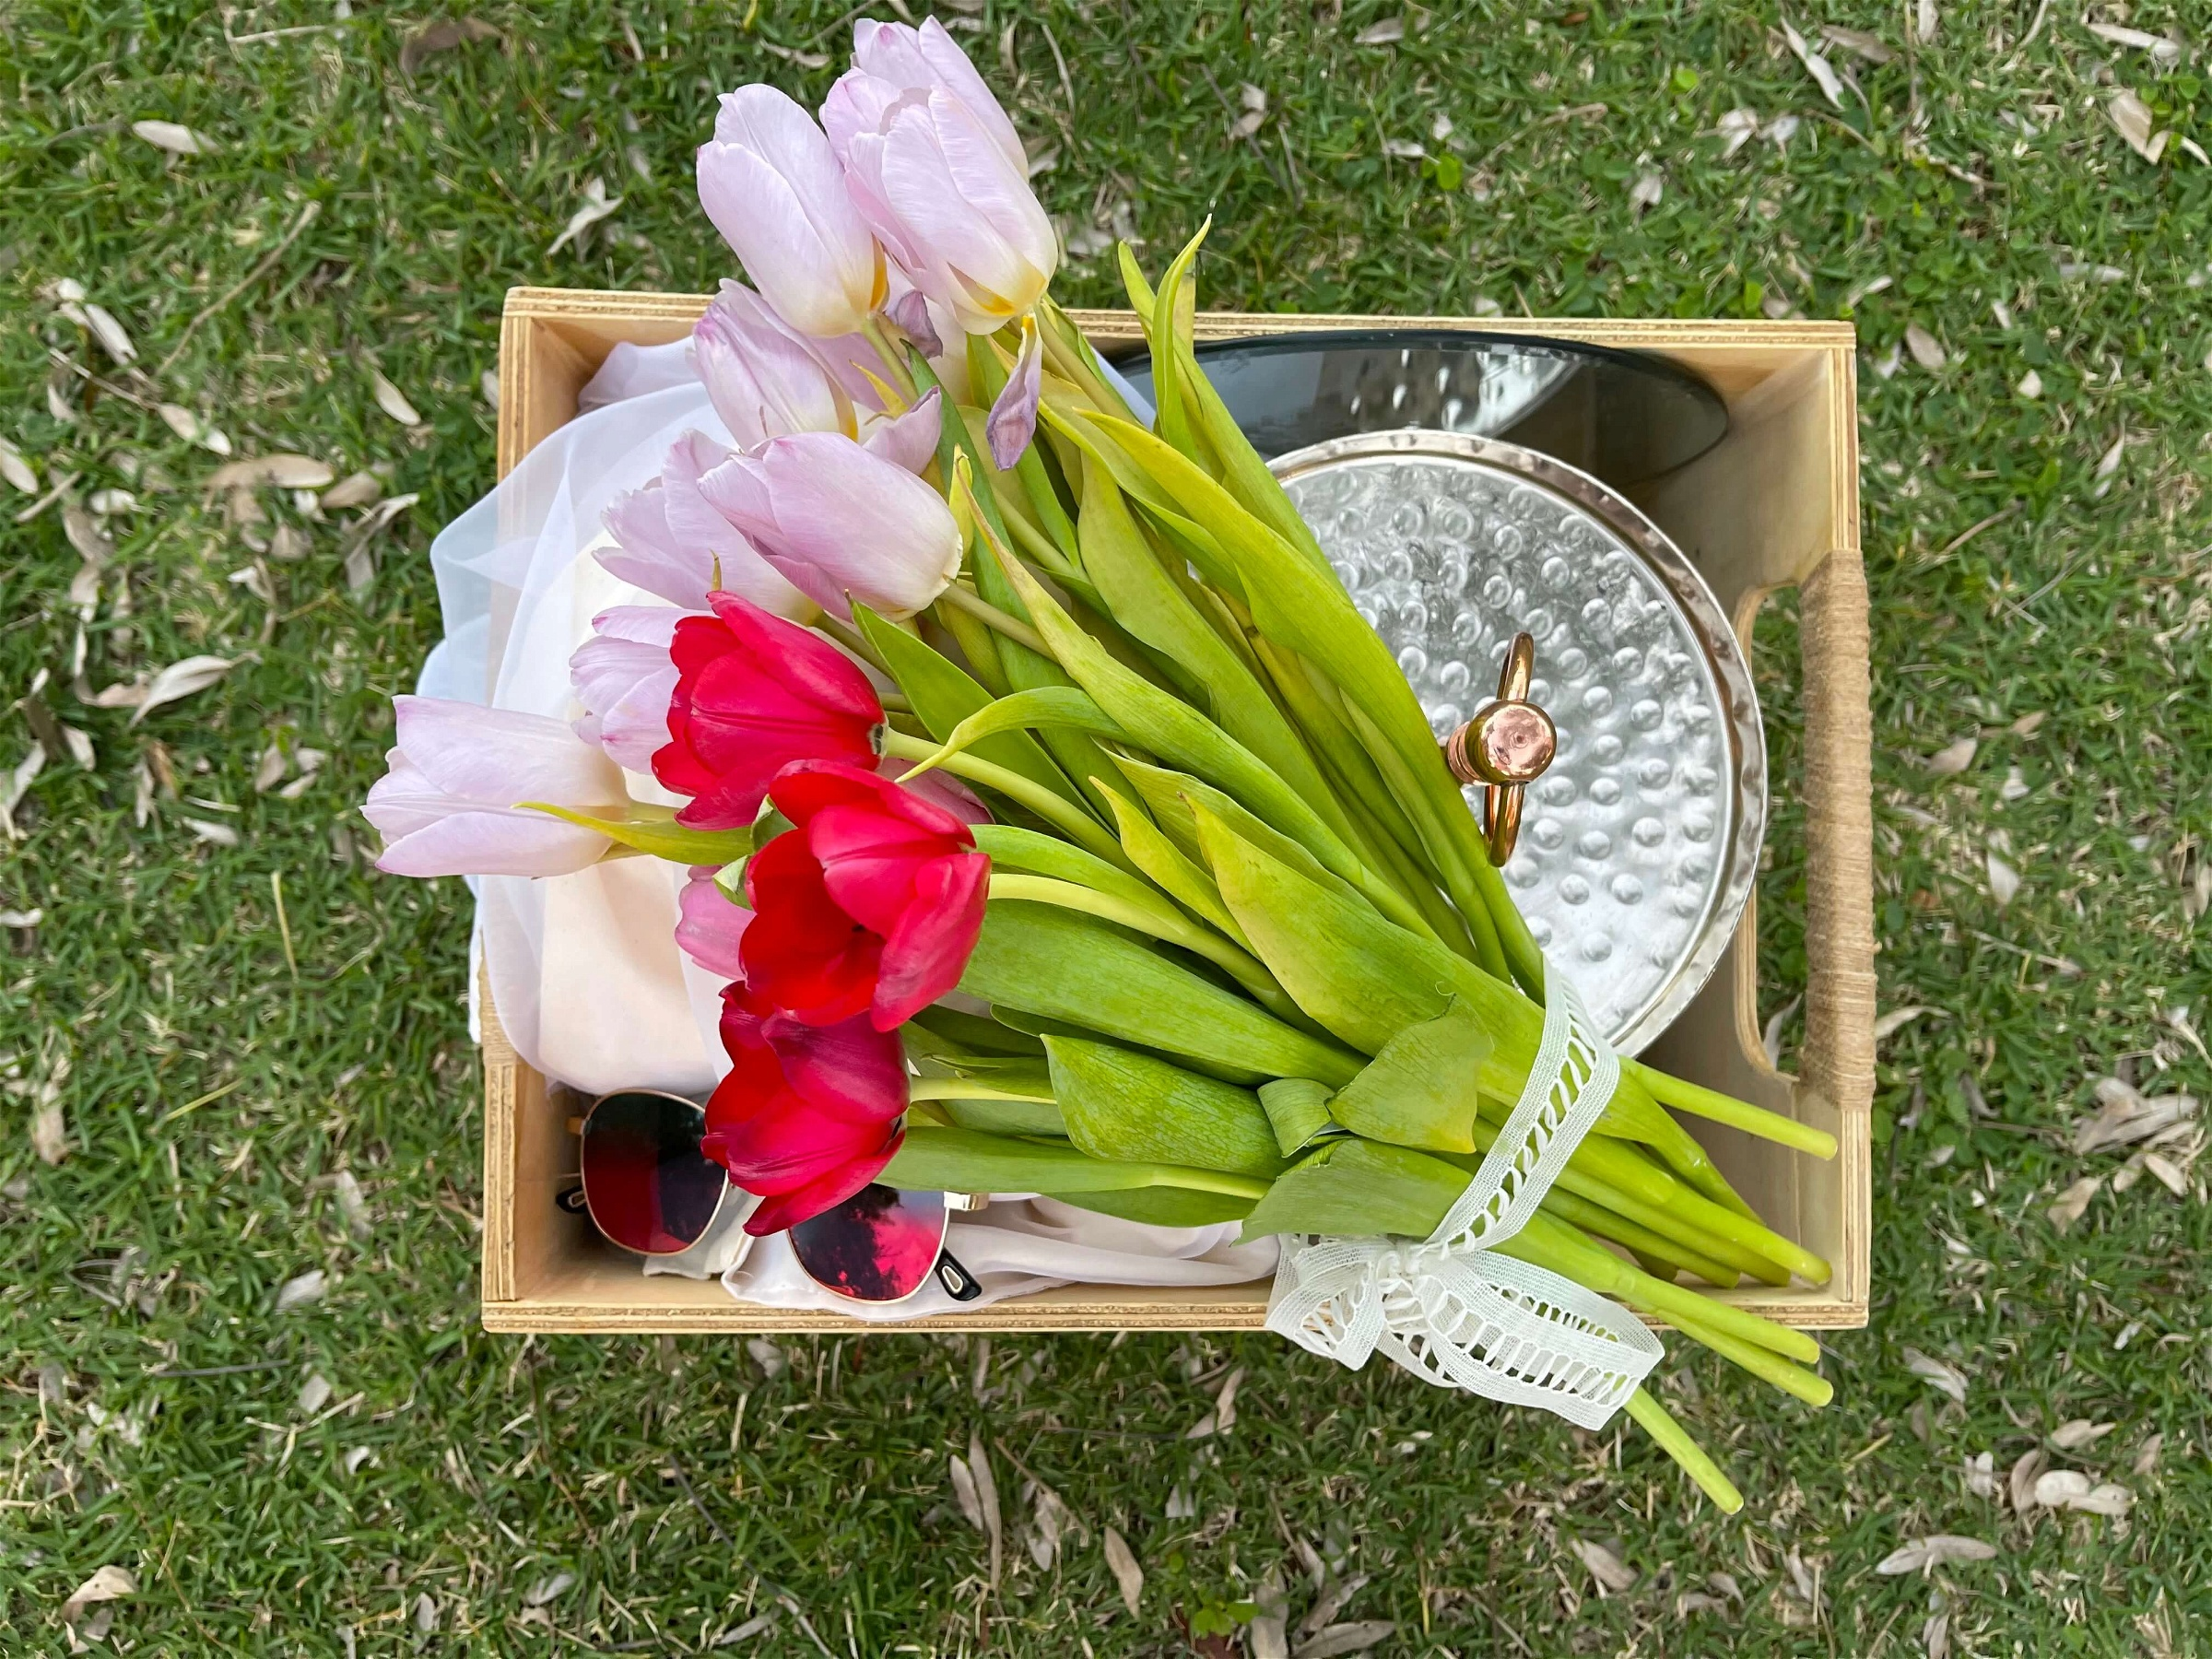 Fresh flowers in a picnic basket in Puerto Rico, designed by Lovely Picnic Hour.